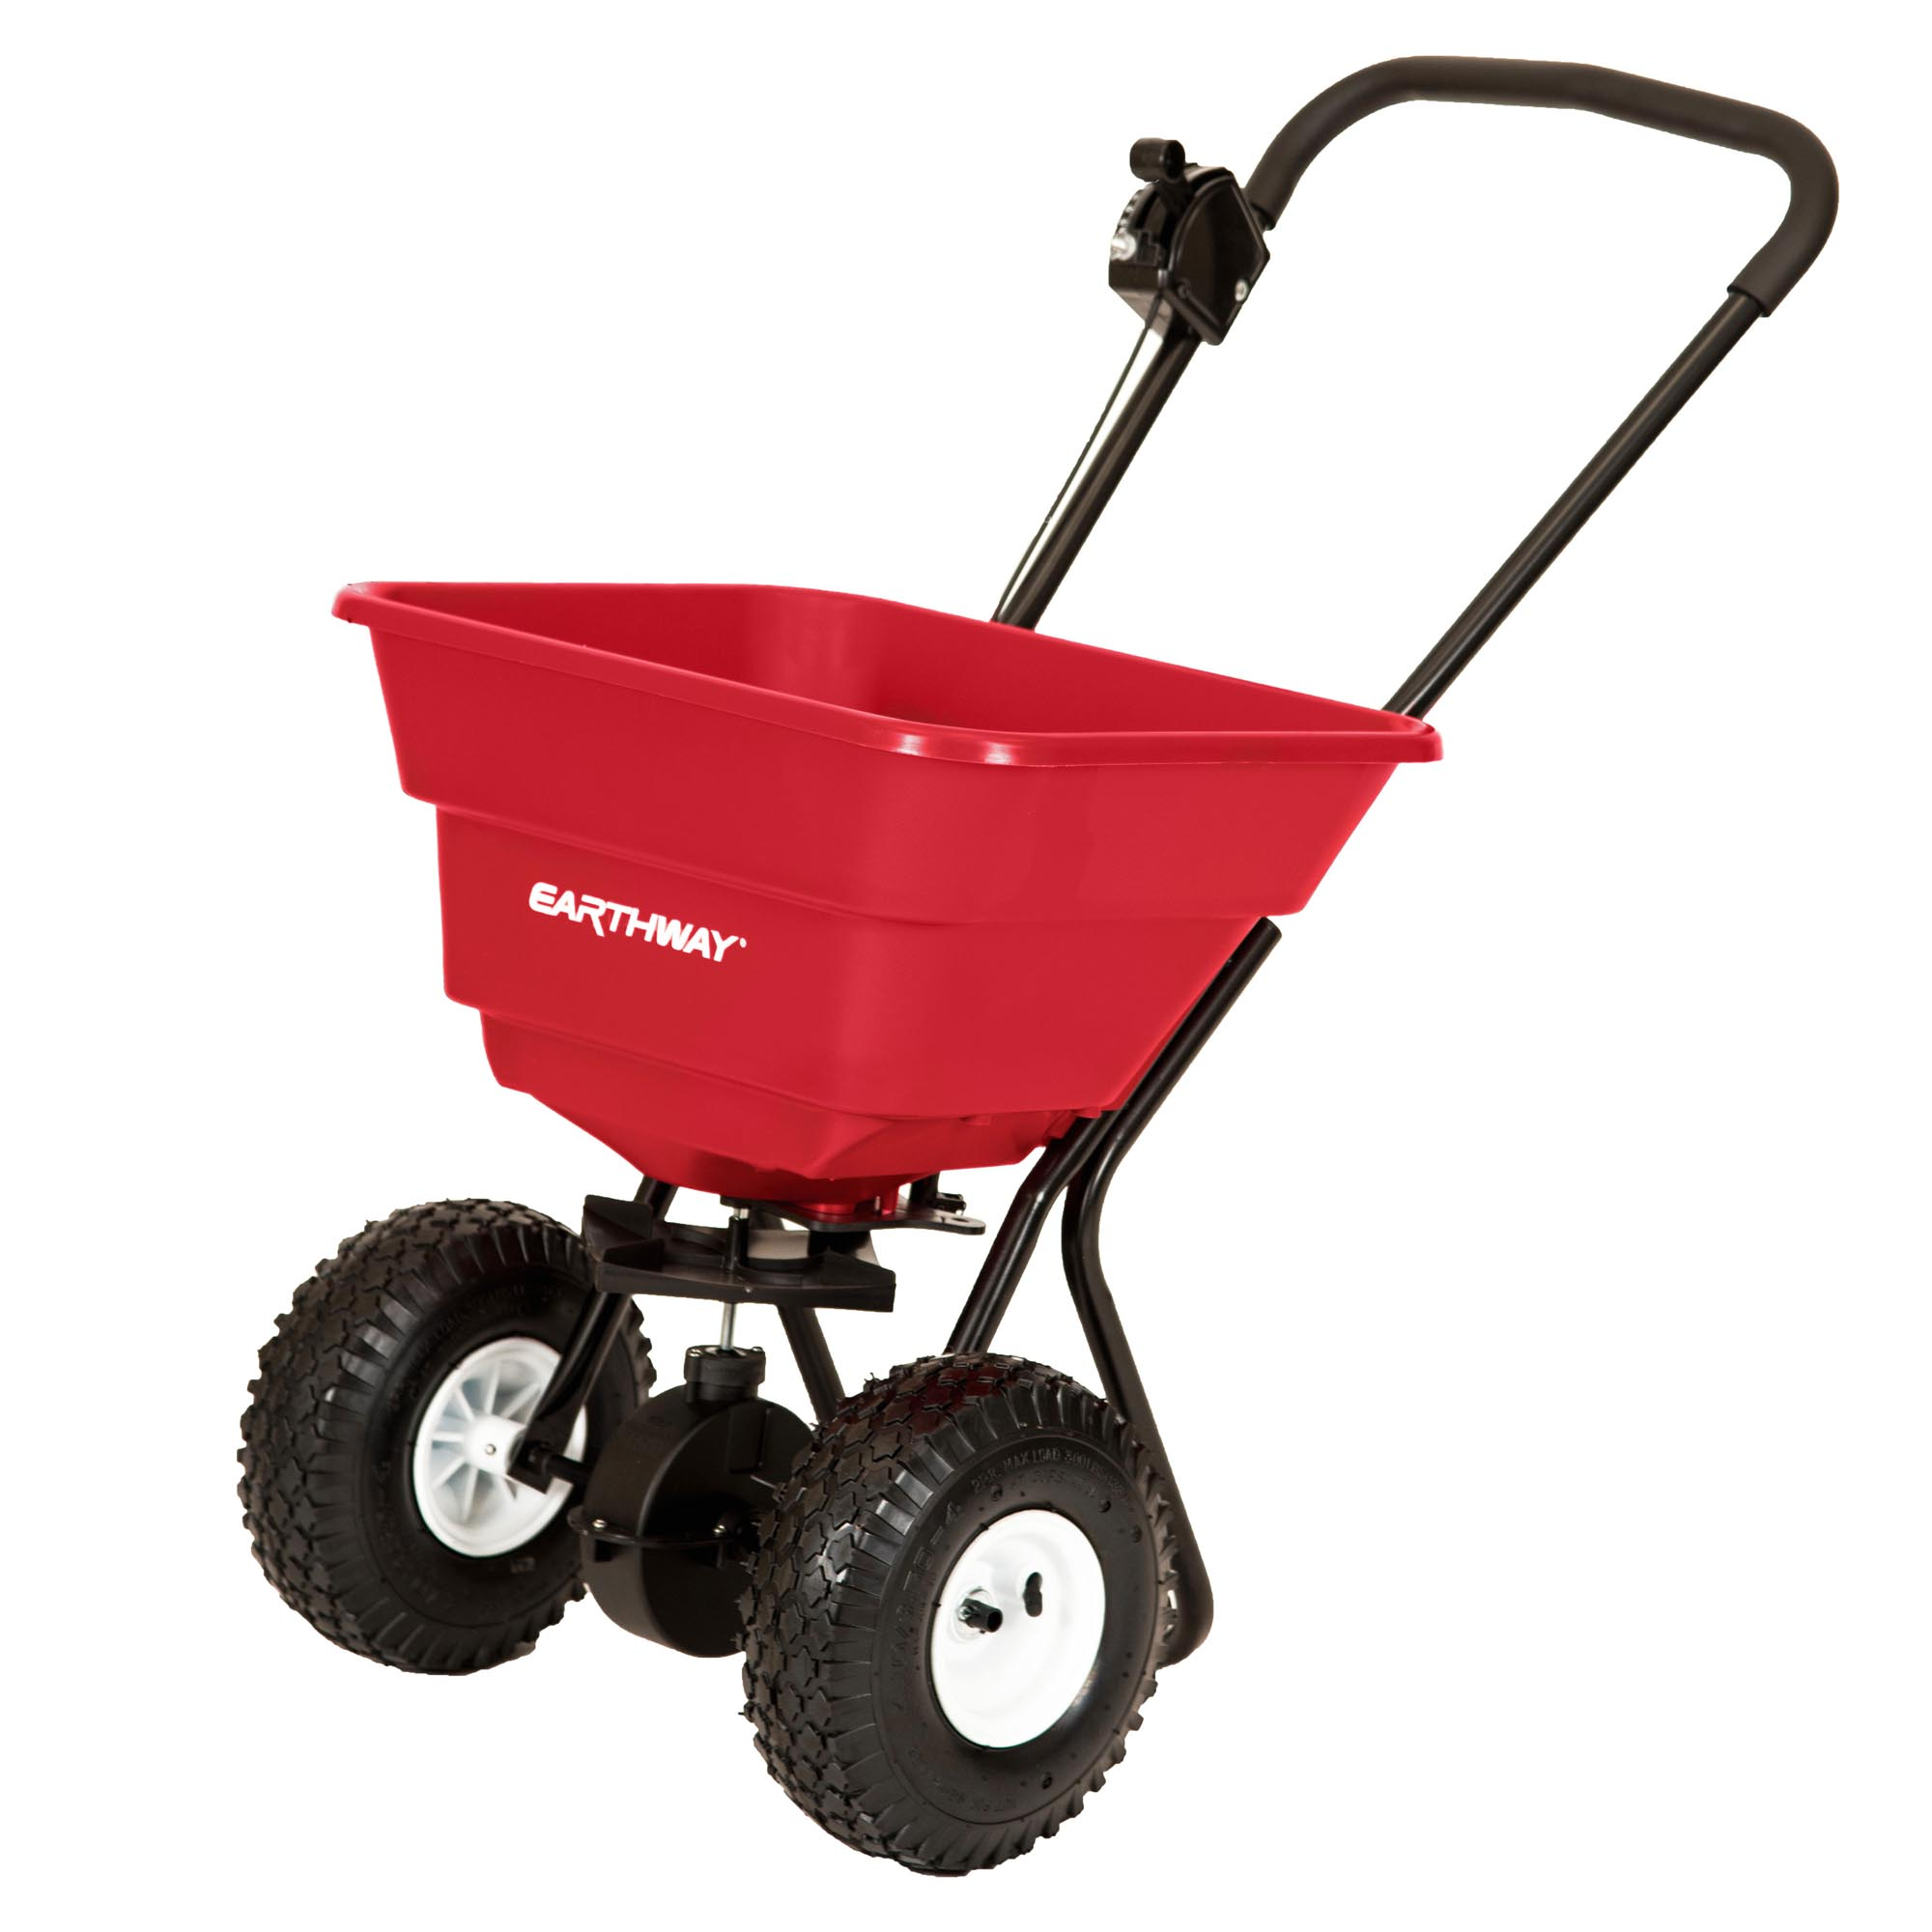 80 LB COMMERCIAL BROADCAST SPREADER WITH PNEUMATIC TIRES